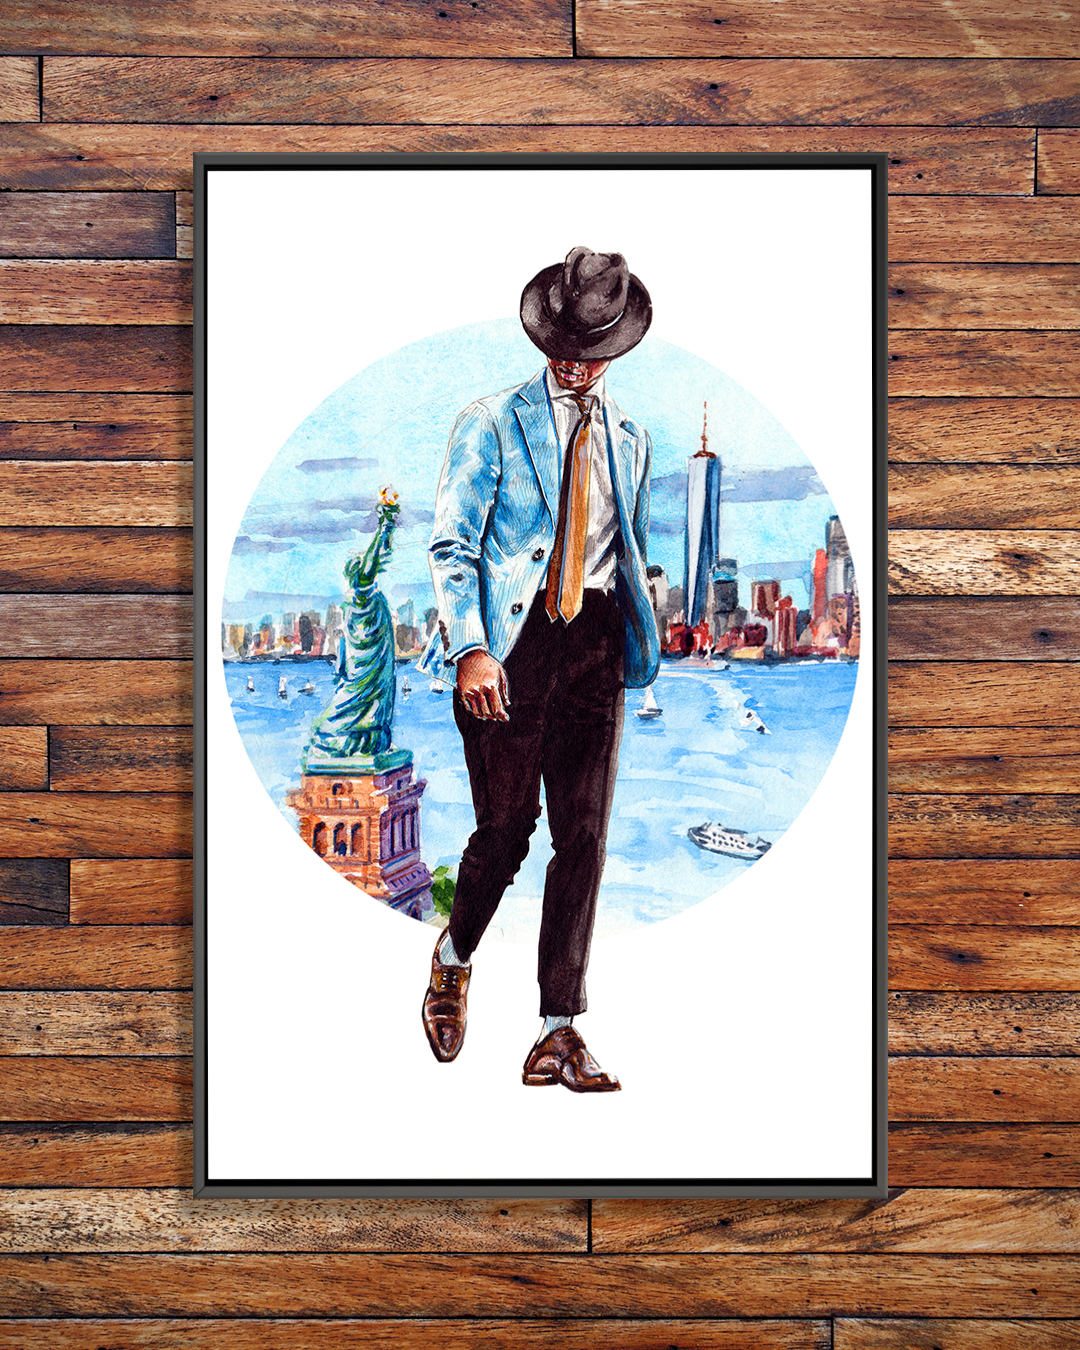 a nicely dressed man wearing a gold tie and hat walking with new york city and statue of liberty in background